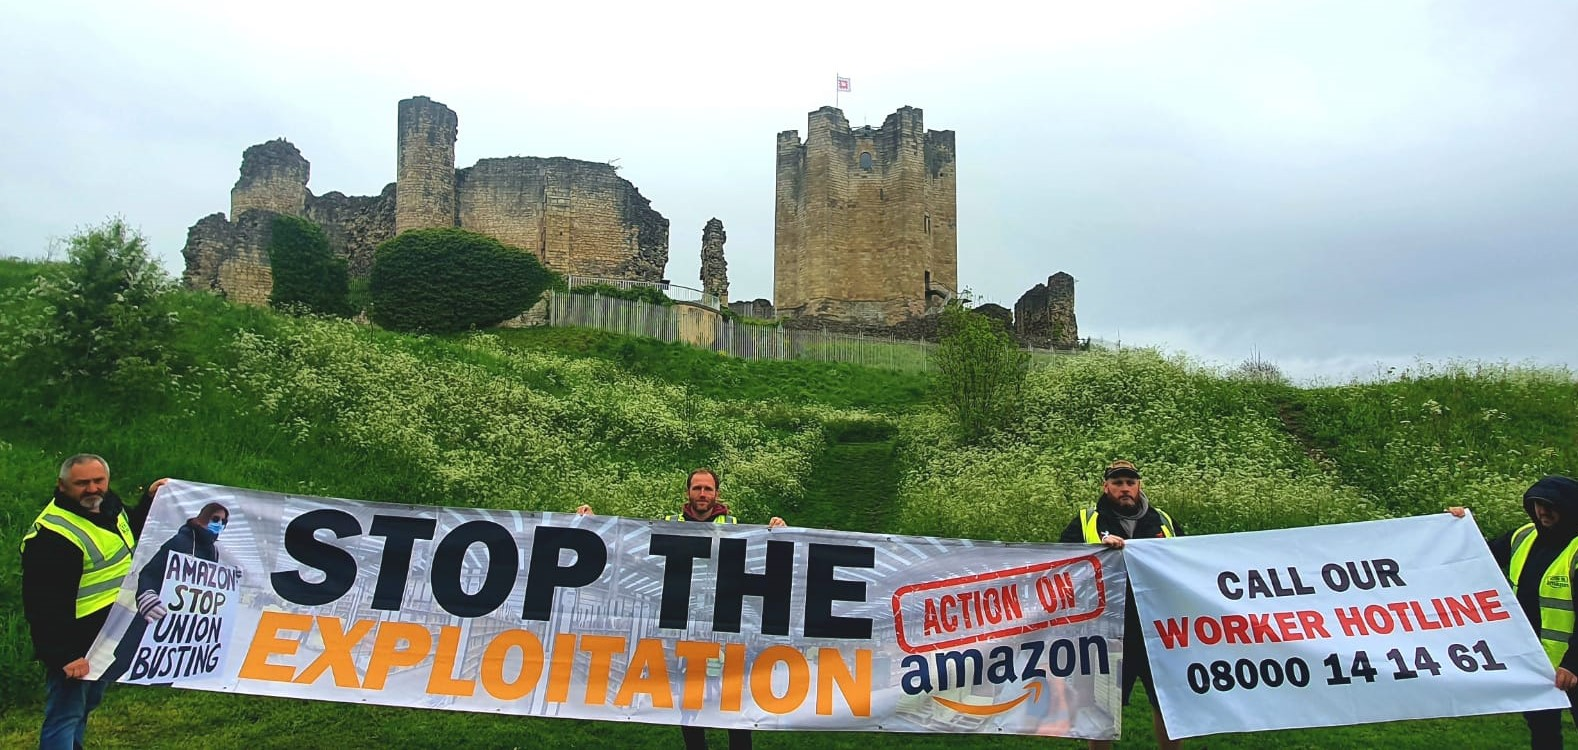 Amazon Workers holding protest banners